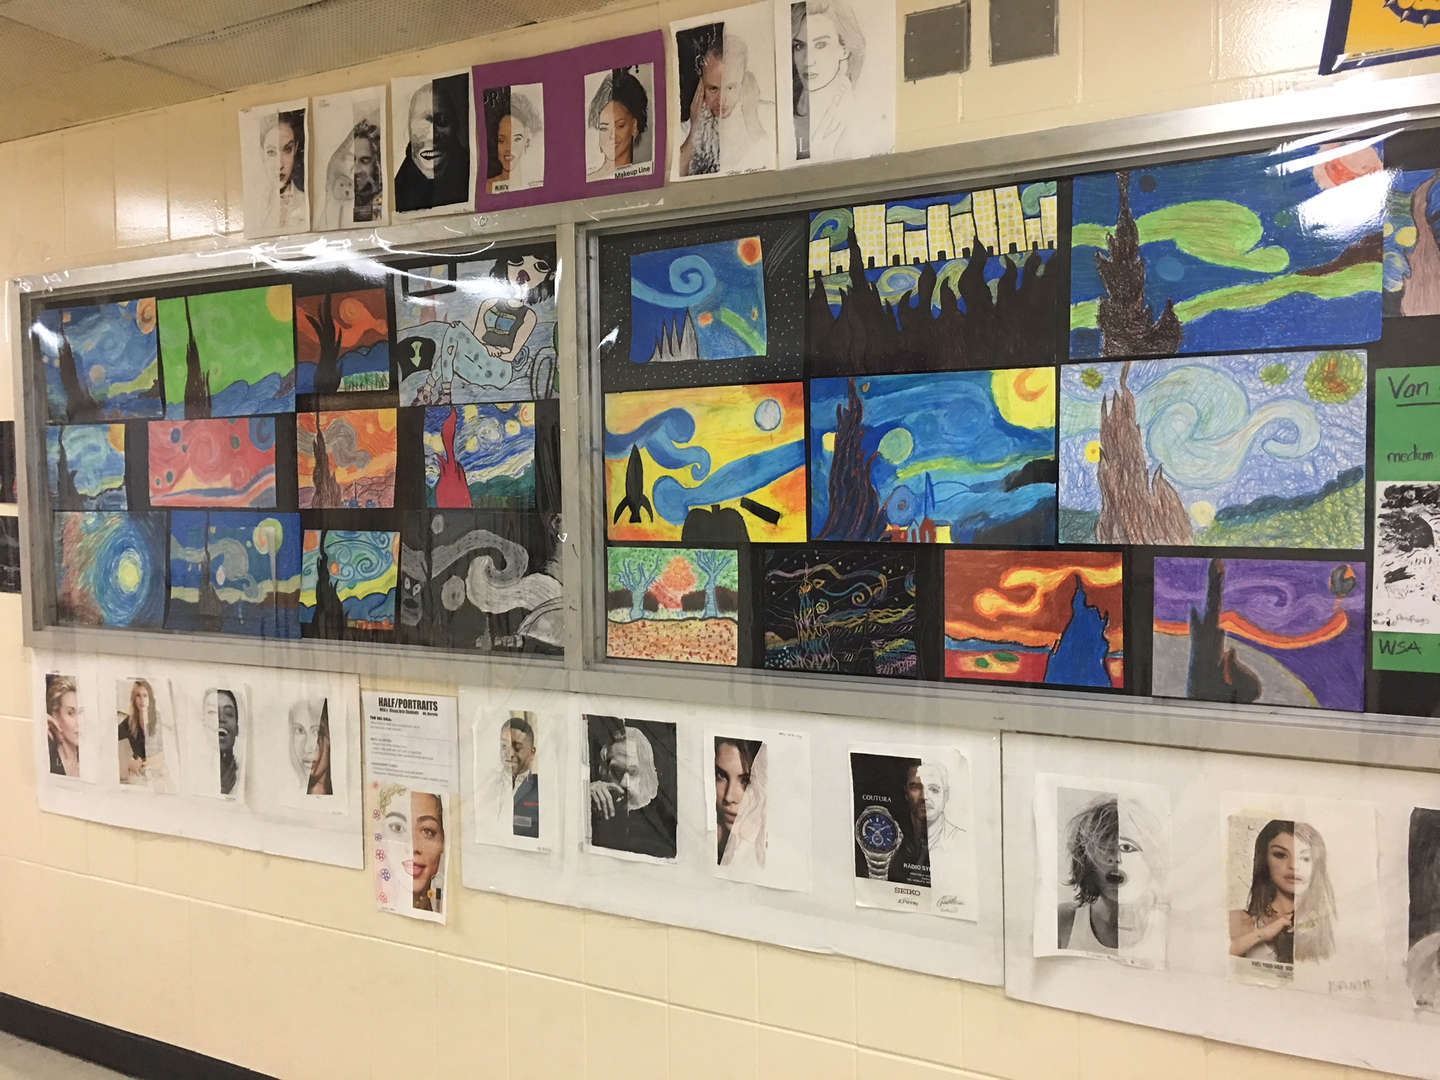 Display of student art work